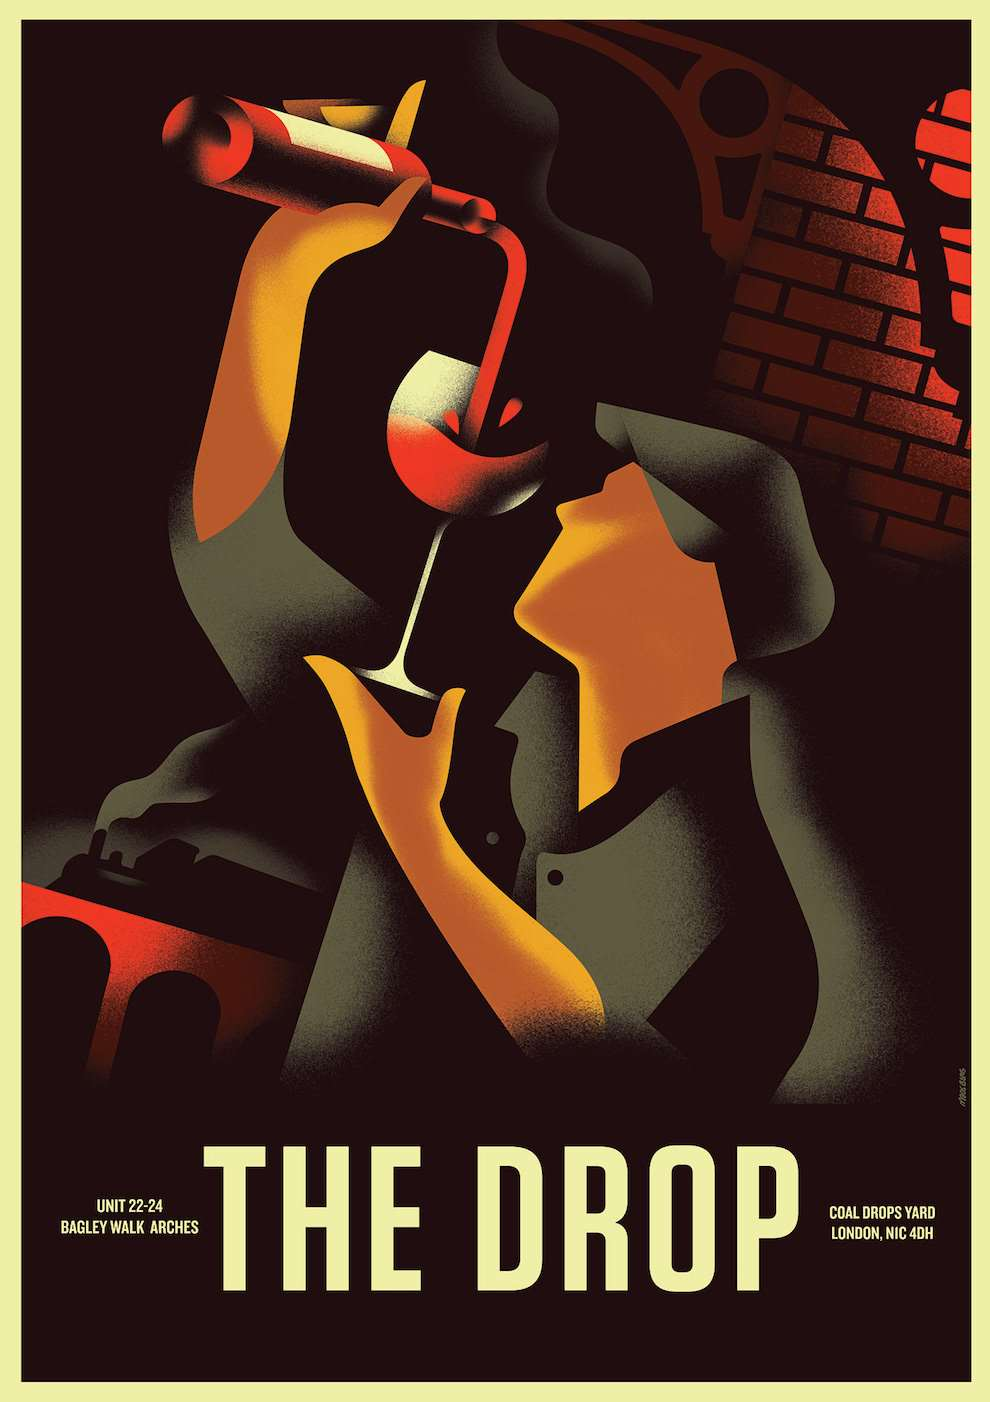 Mads Berg, Art deco digital vintage illustration of a man pouring red wine in a glass. Train in the background